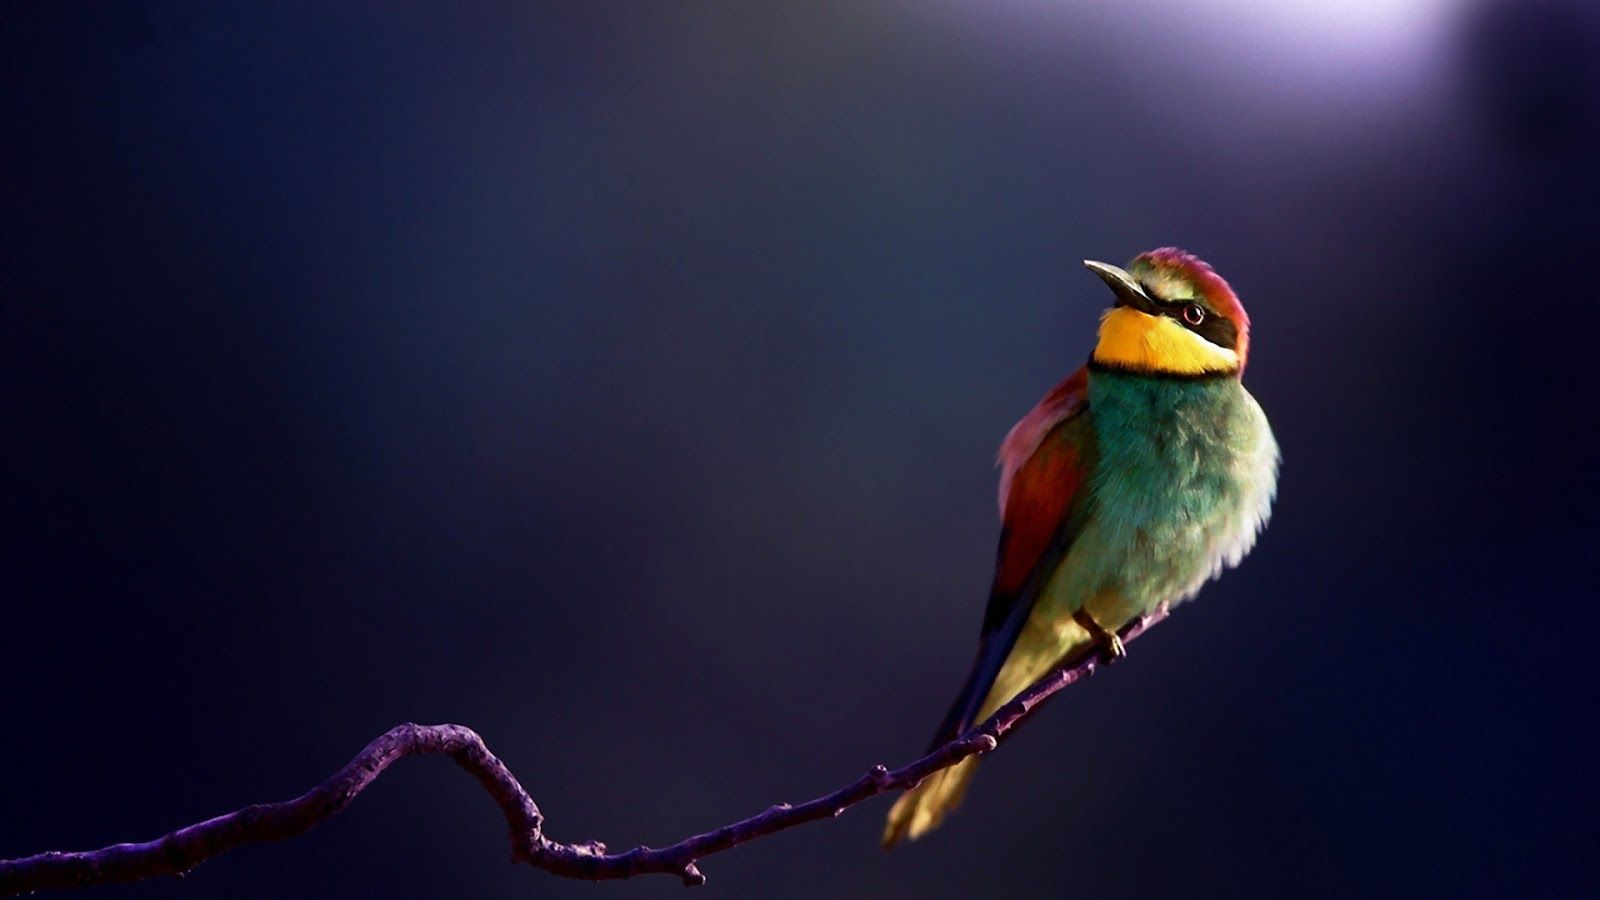 colorful hd birds wallpapers,birds,cute birds hd ...